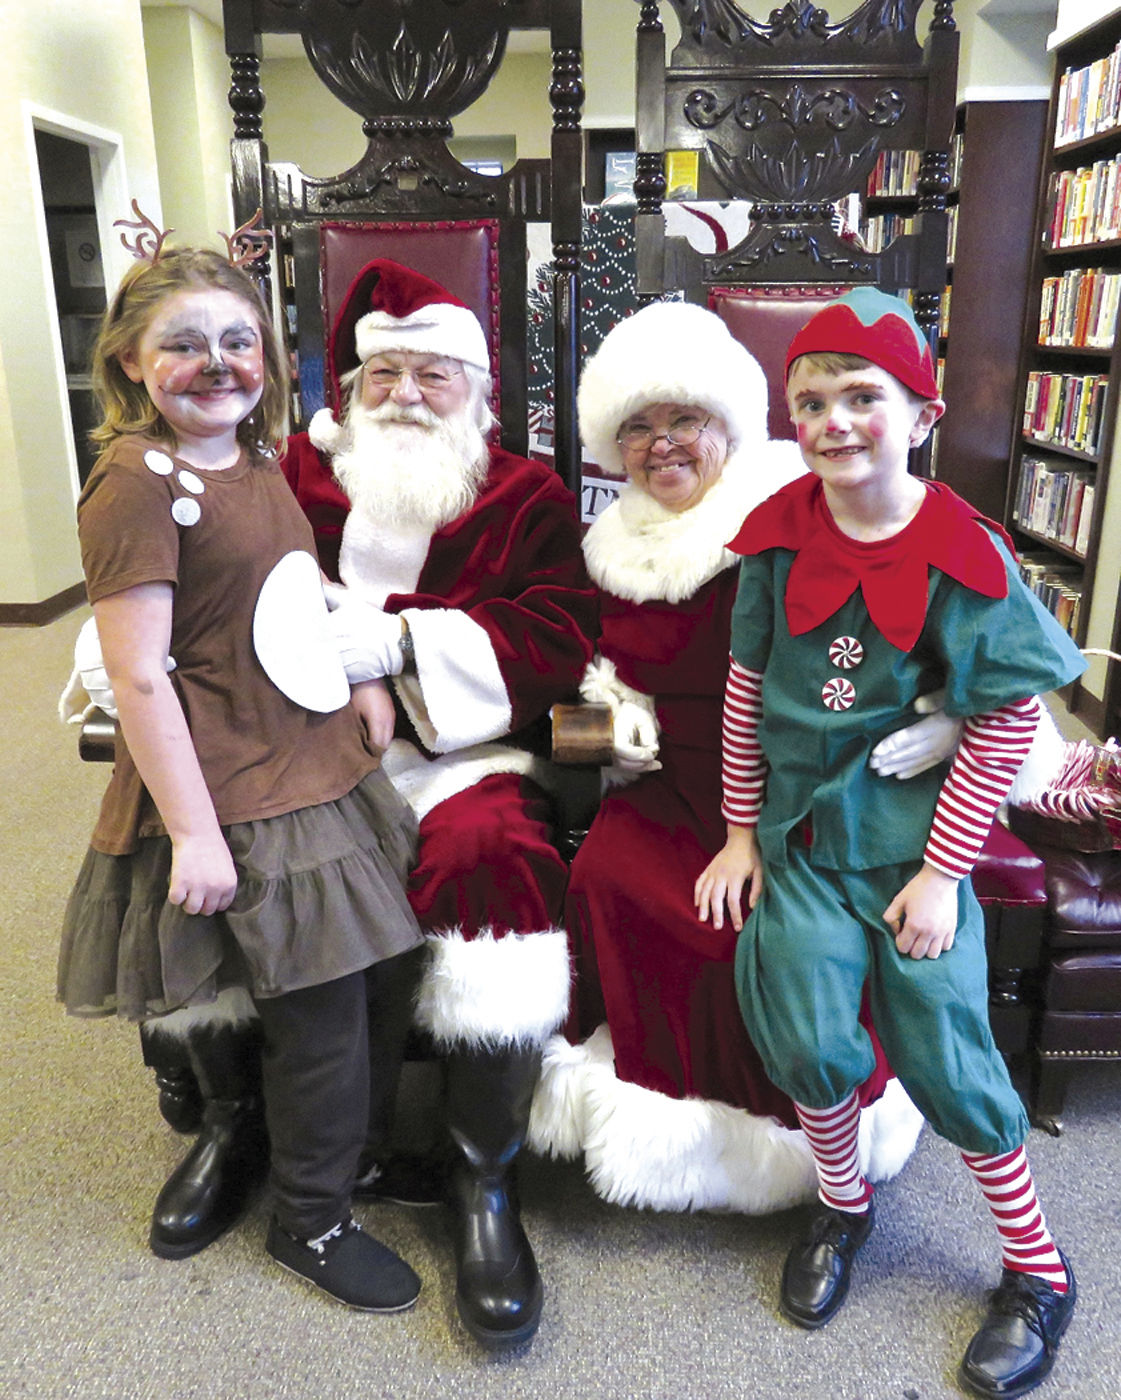 santa and mrs claus come around this time of year to greet children and listen to their wish lists shown are santa and mrs claus played by doug nottis